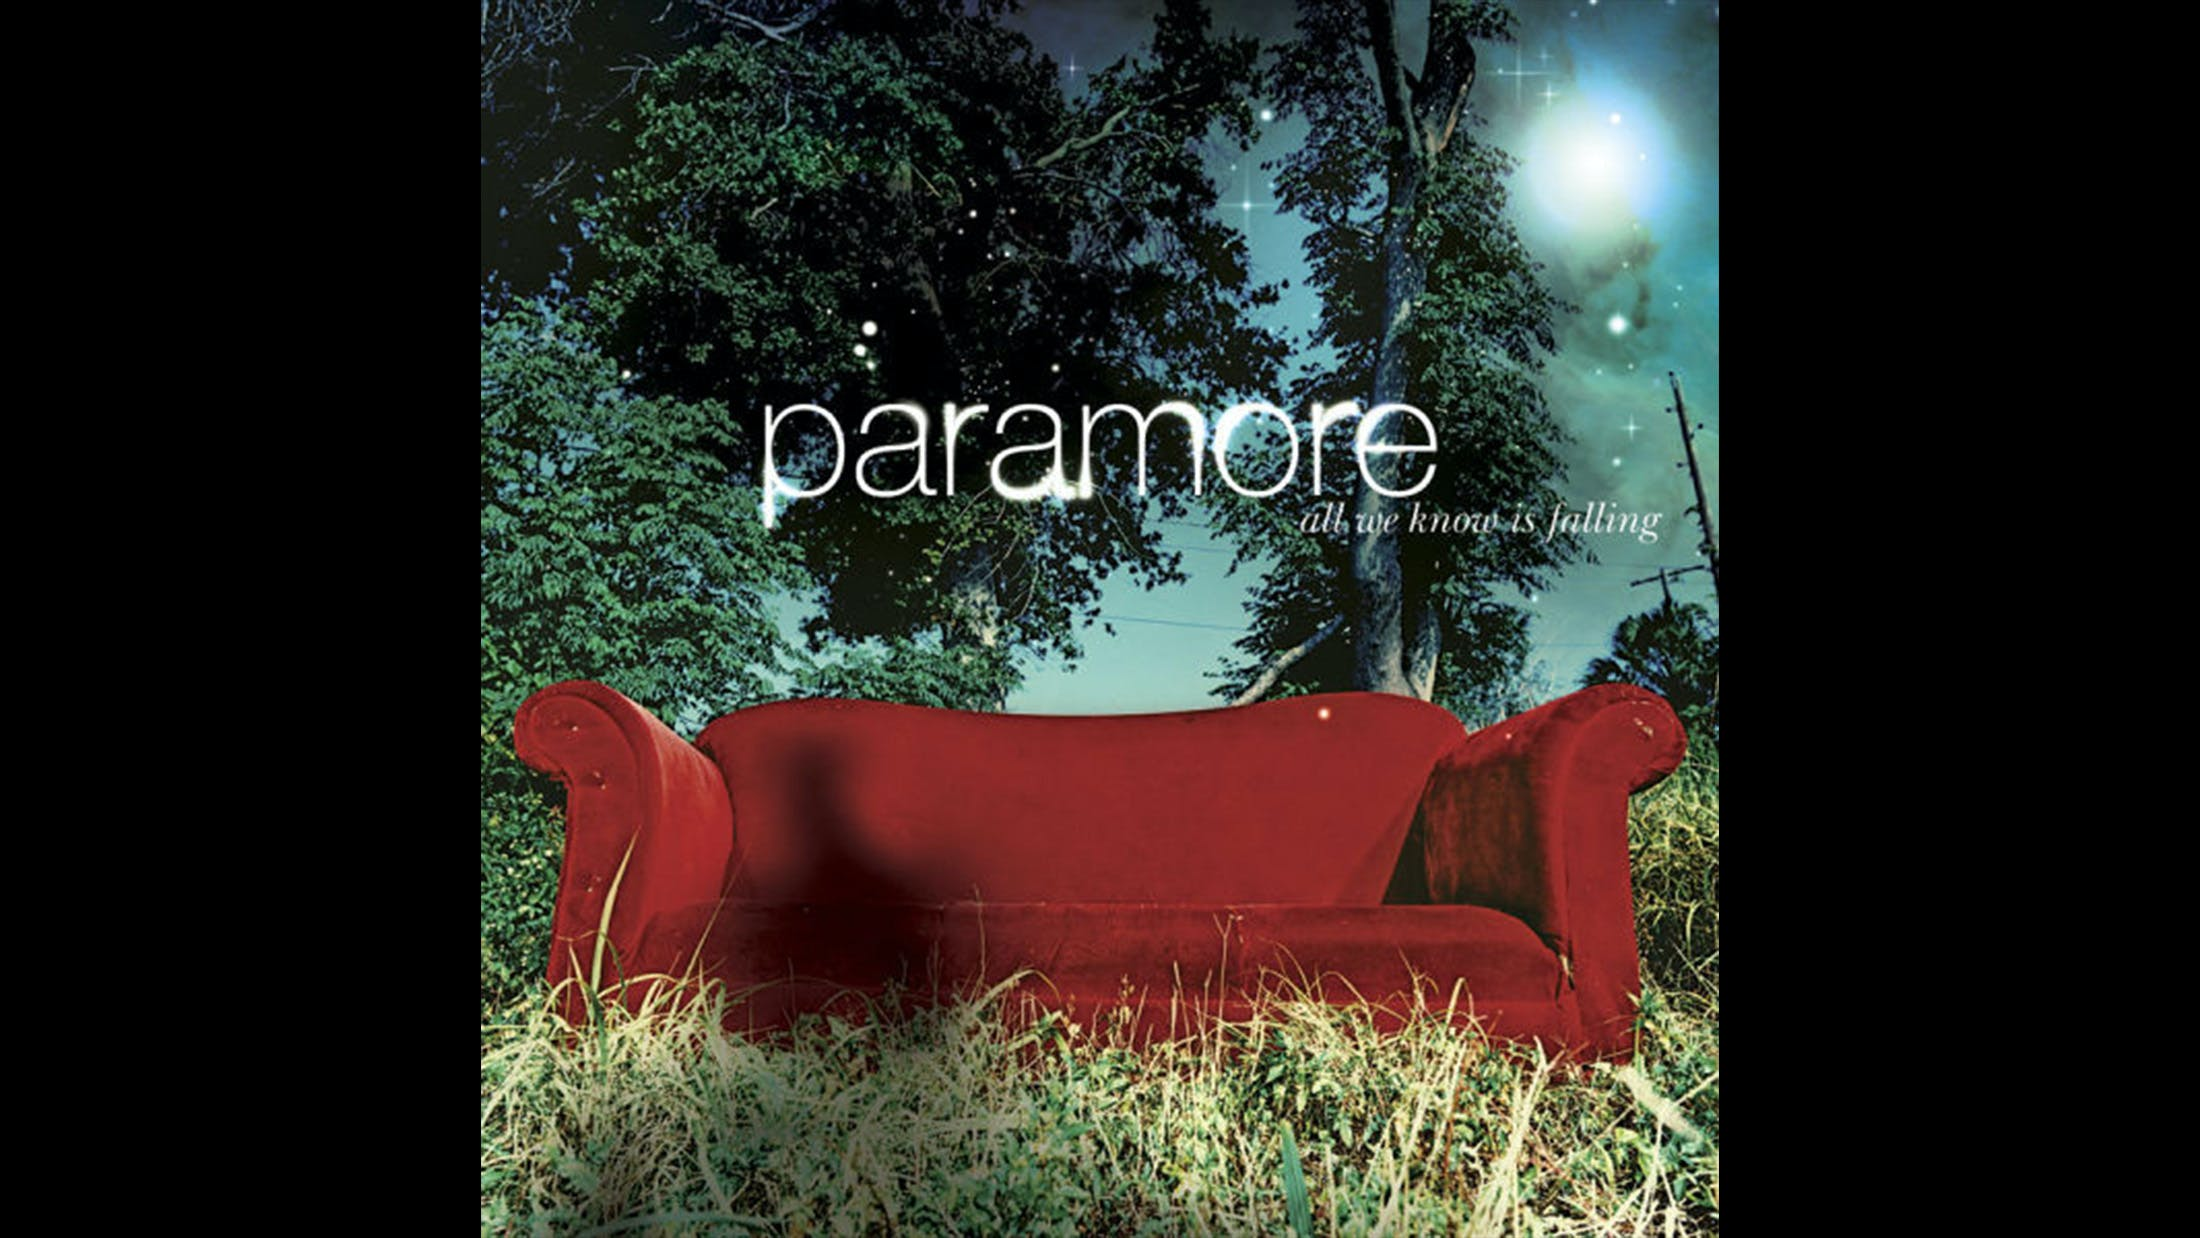 8. Paramore - All We Know Is Falling (2005)